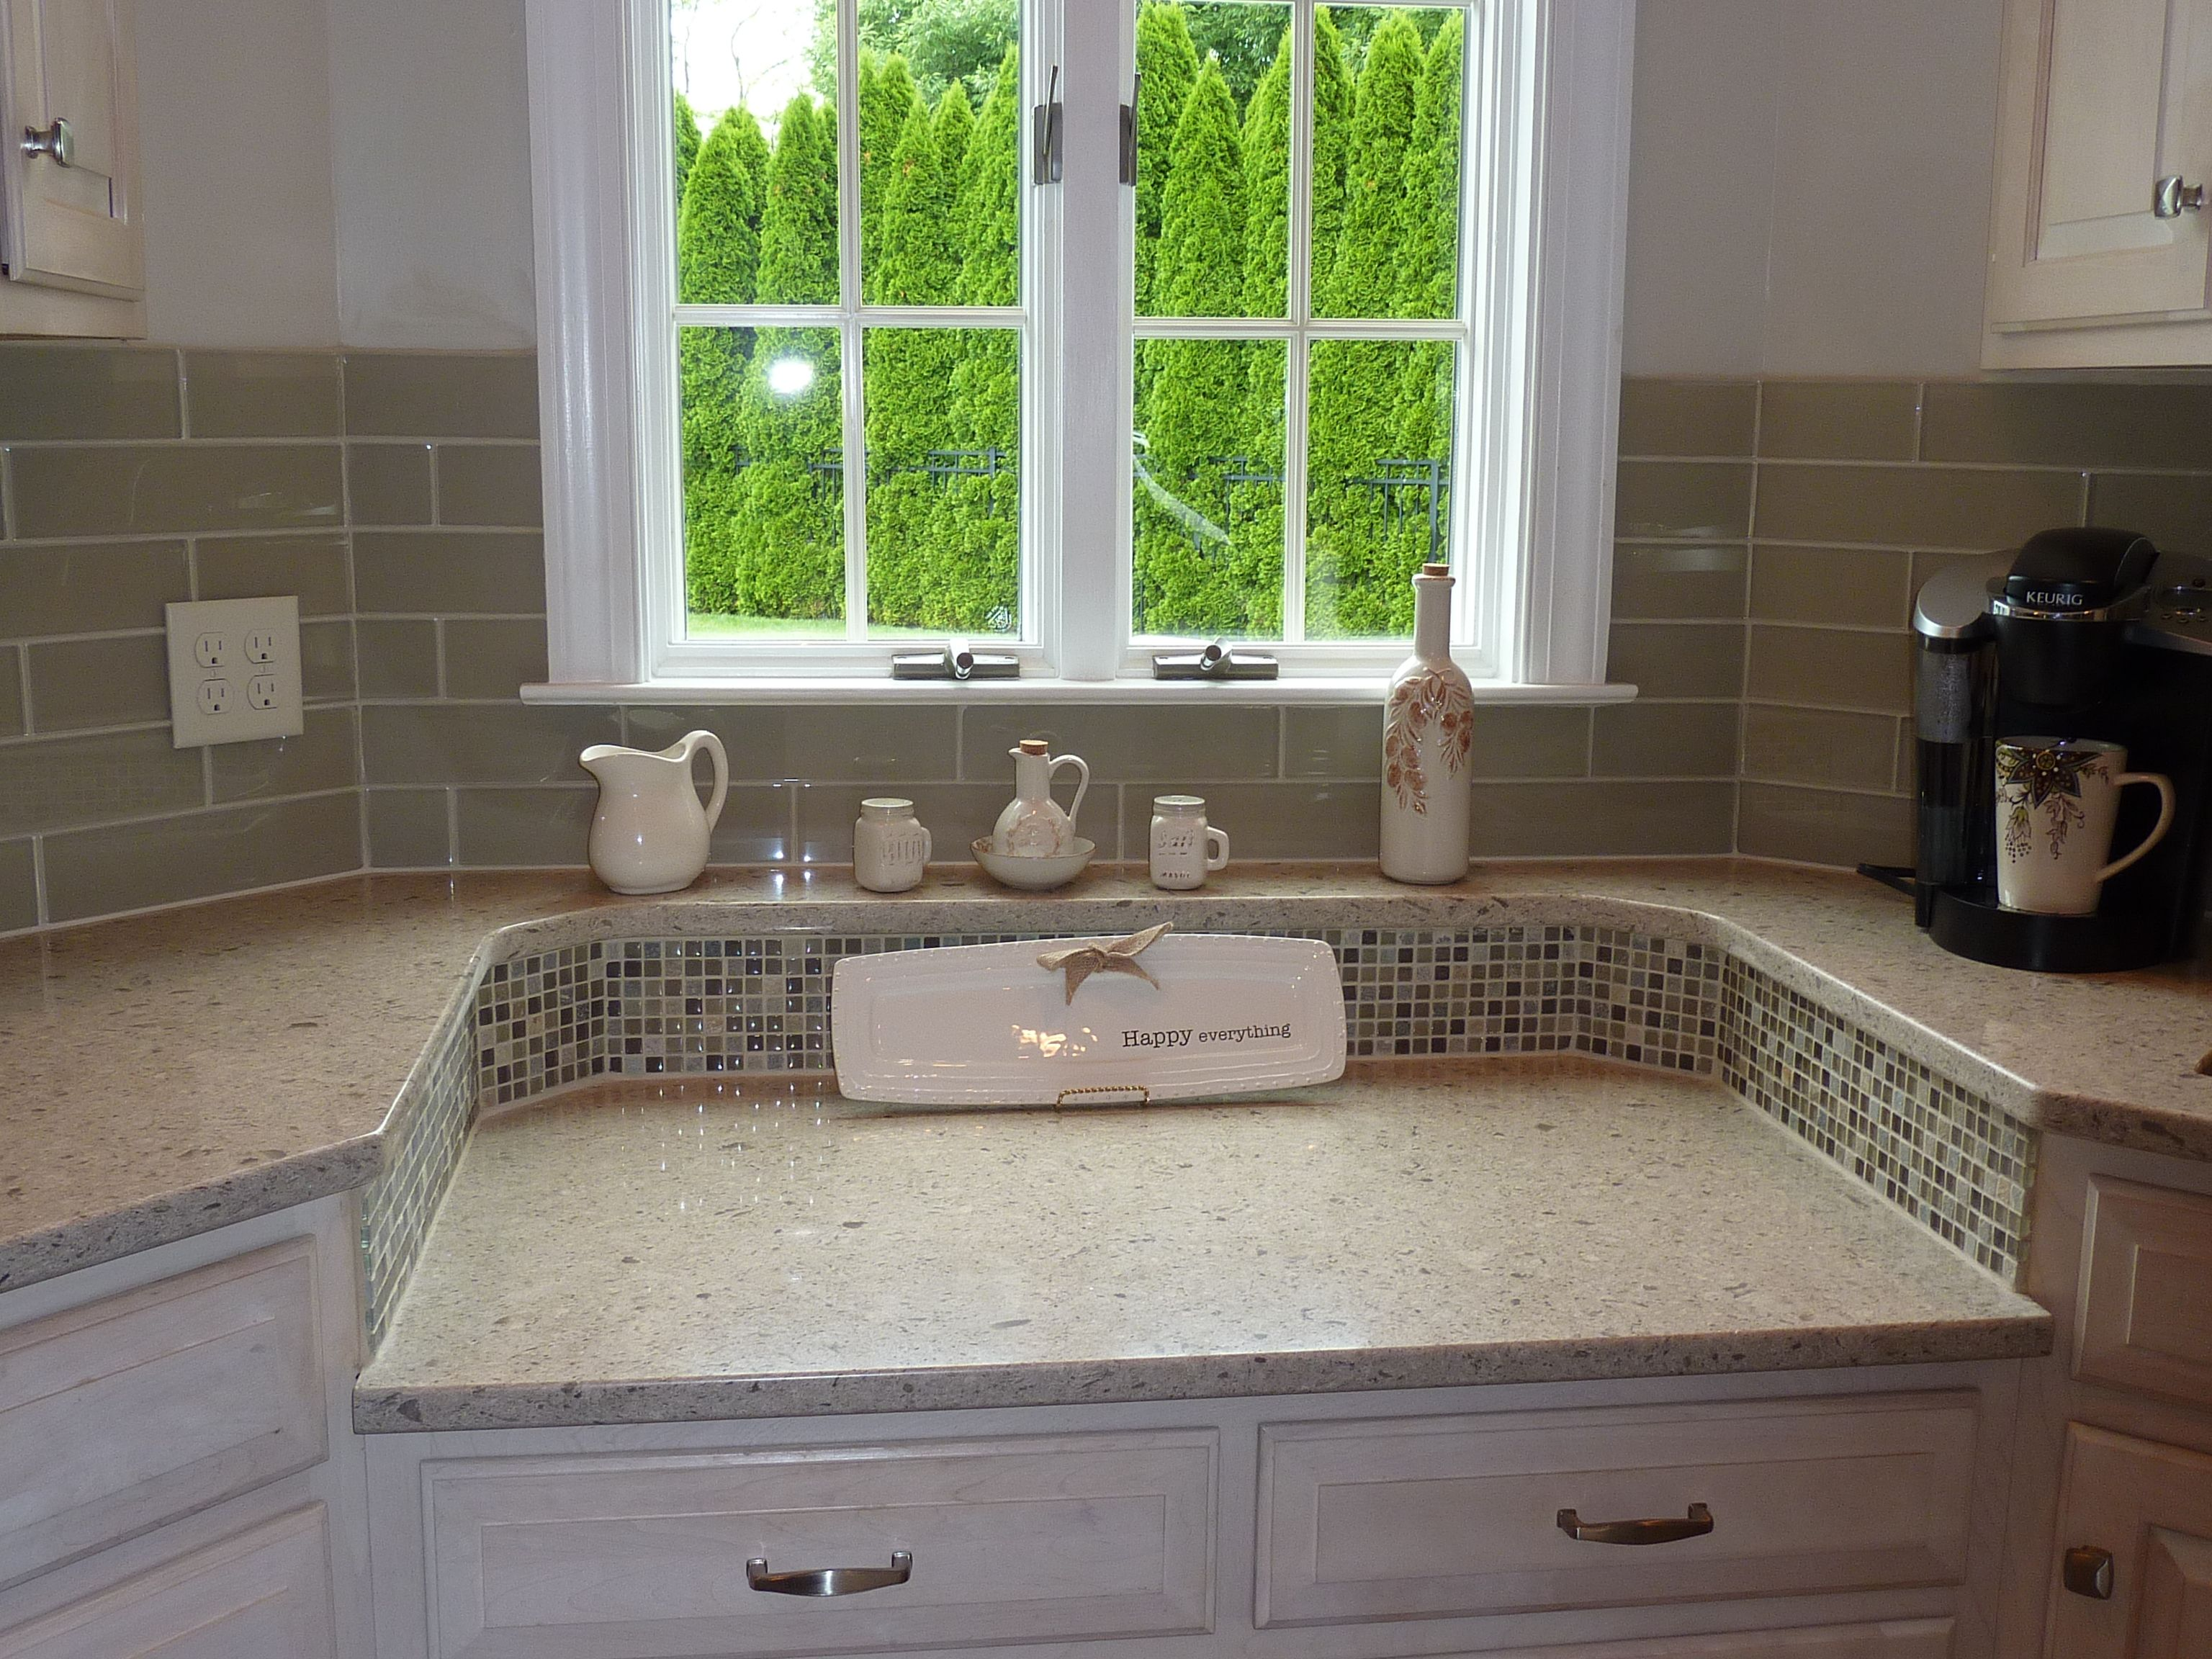 Cambria Darlington Quartz counters Bliss stone glass mosaics and Bliss Element Earth glass